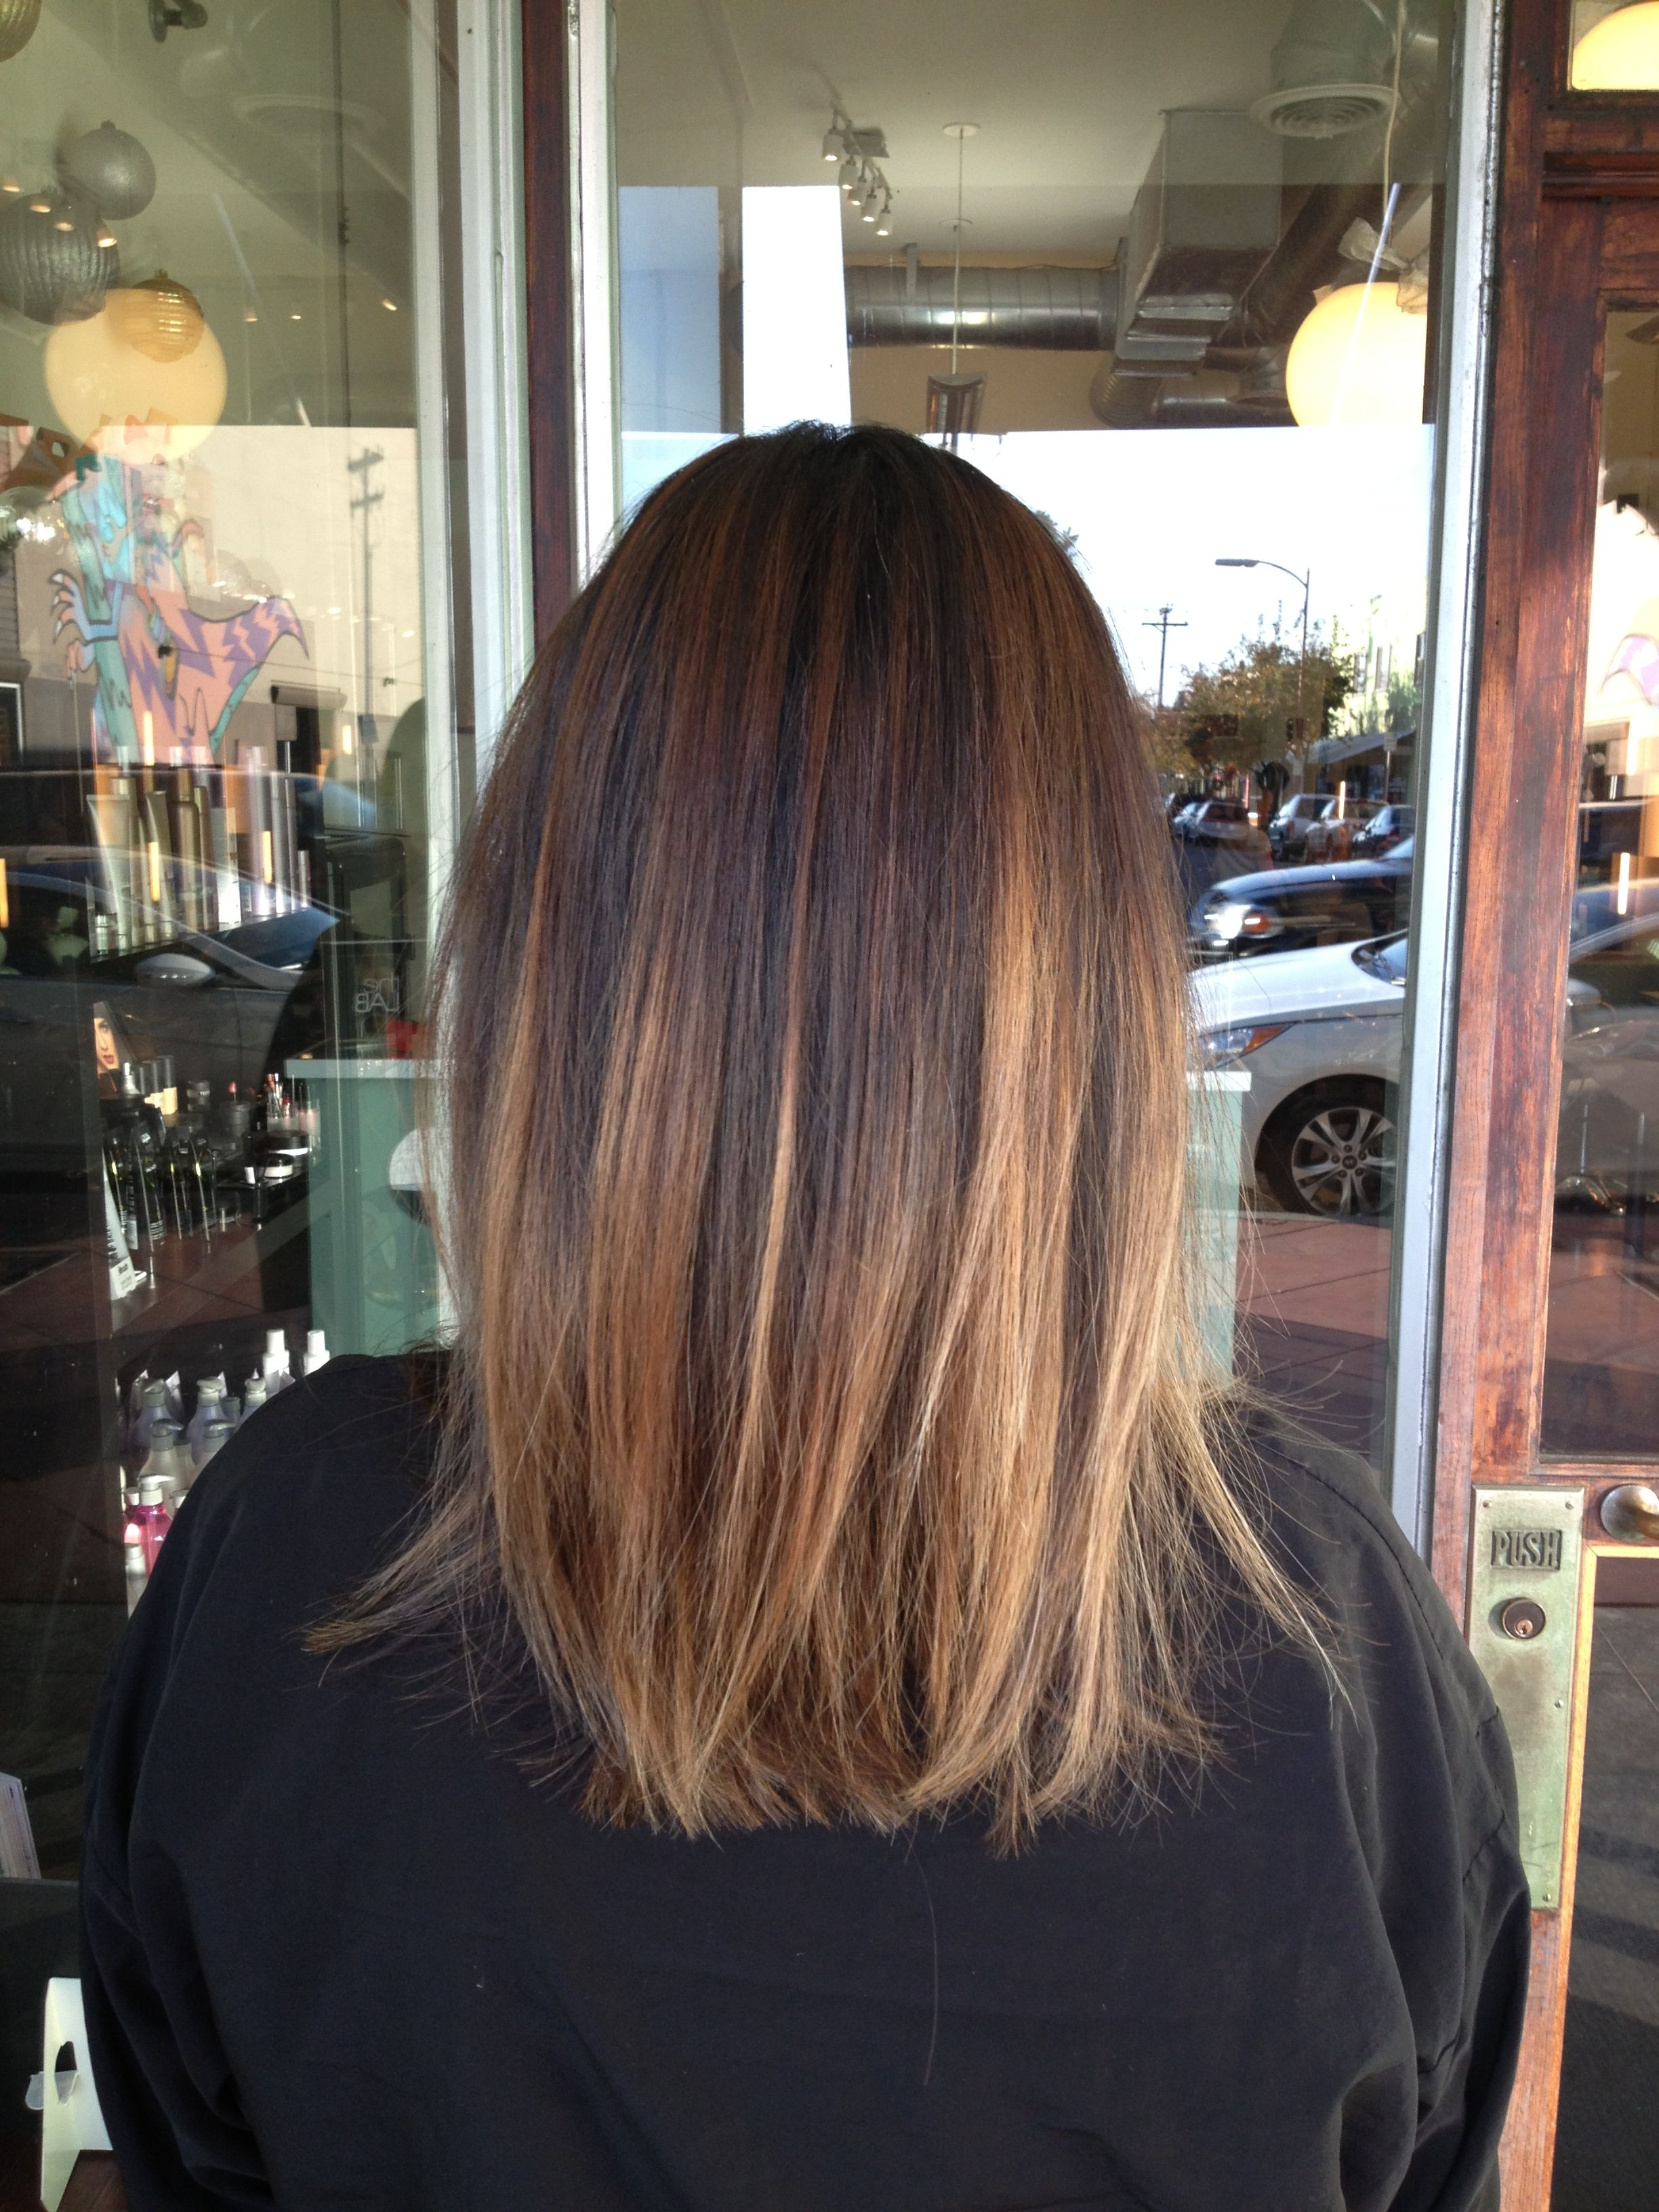 Gorgeous balayage ombre highlights by Alex Schmoker @ The